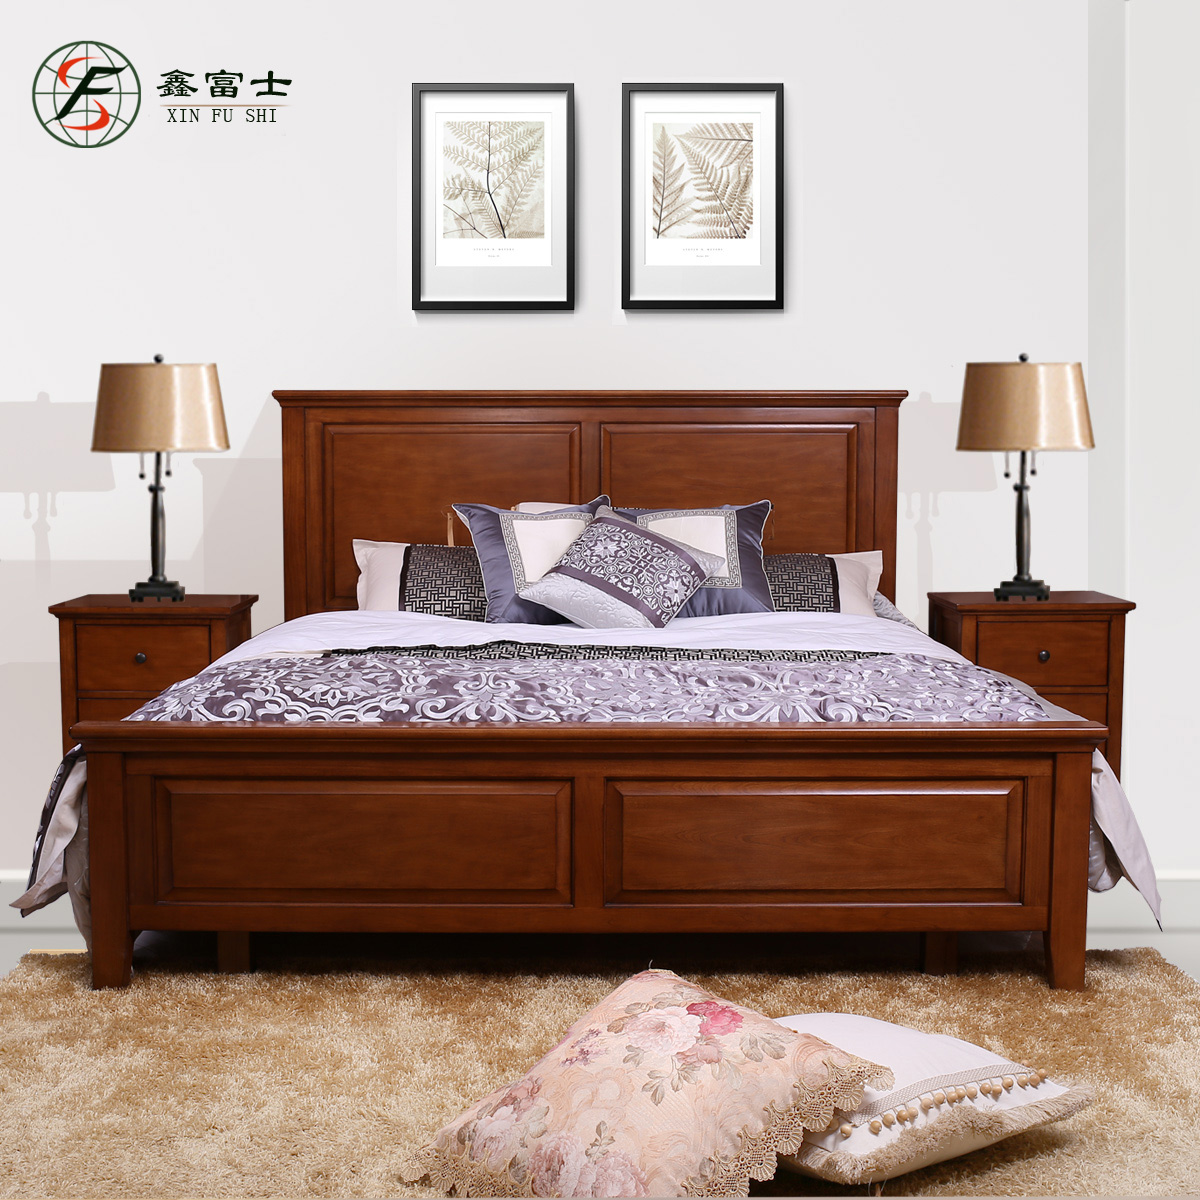 Xin fuji 1.5 m single 1.8 m double bed wood bed minimalist marriage bed bed bed korean